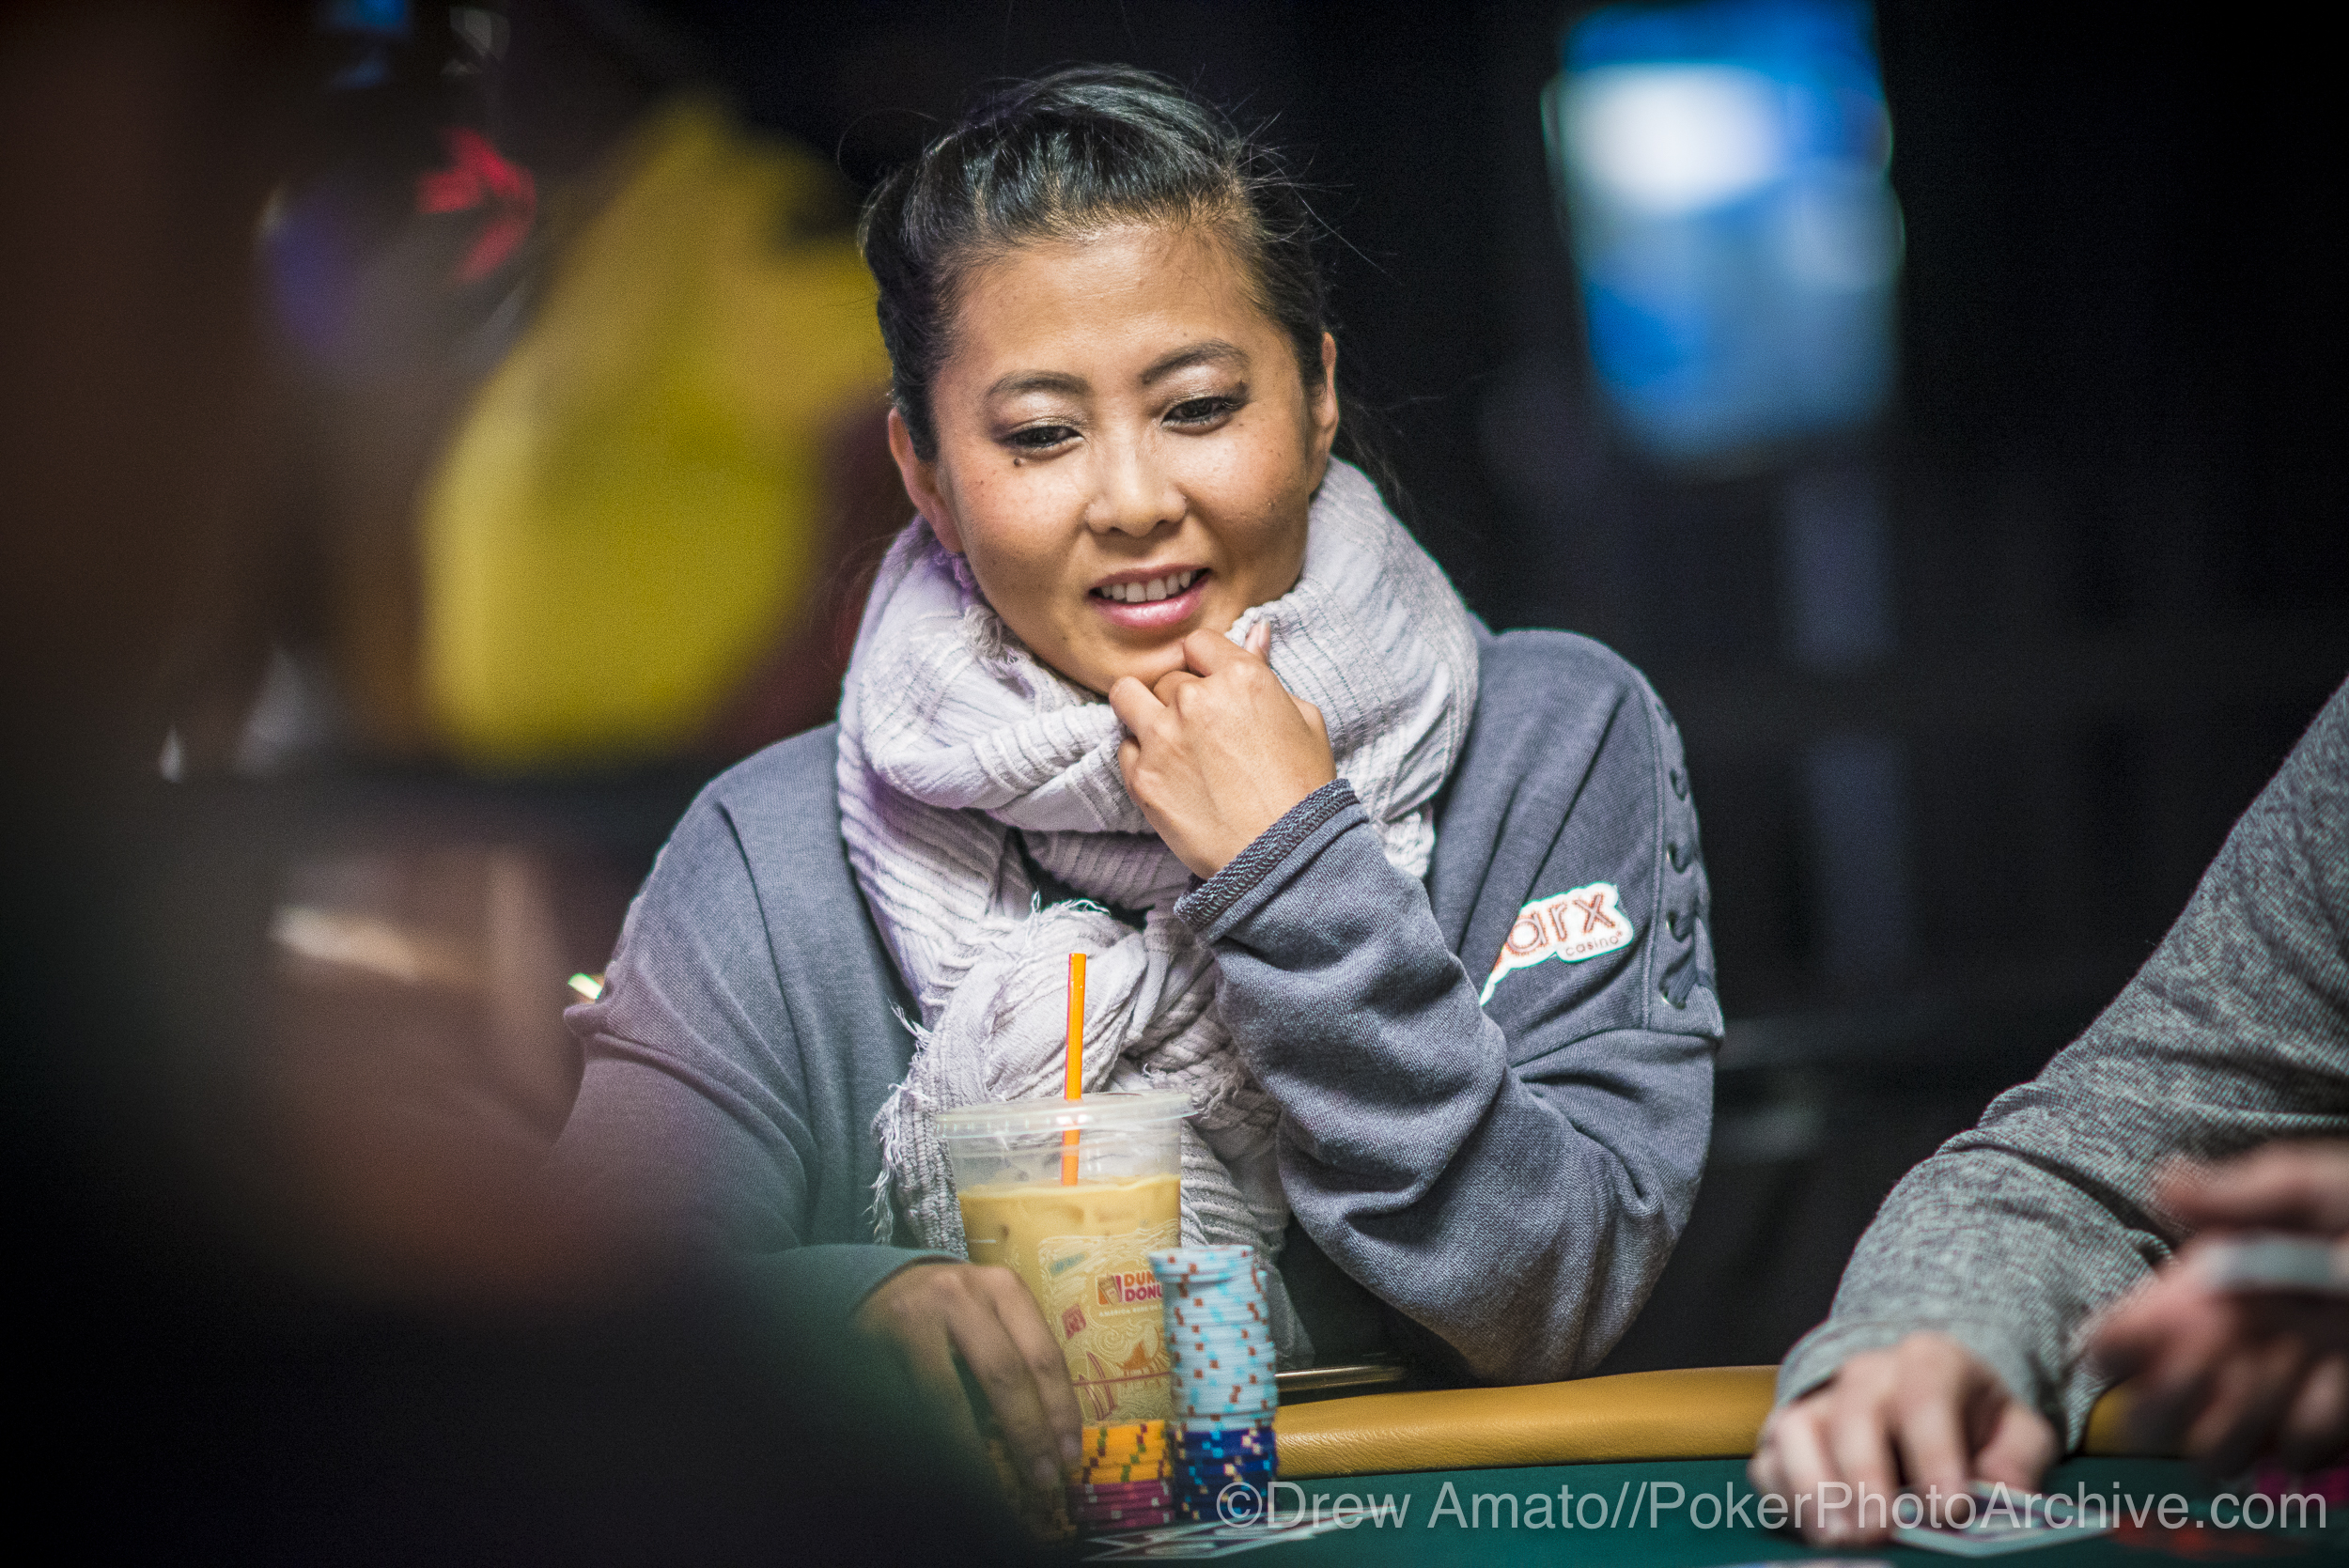 Esther Taylor_2017 WSOP_EV010_Day 3_Amato_DA67043.jpg